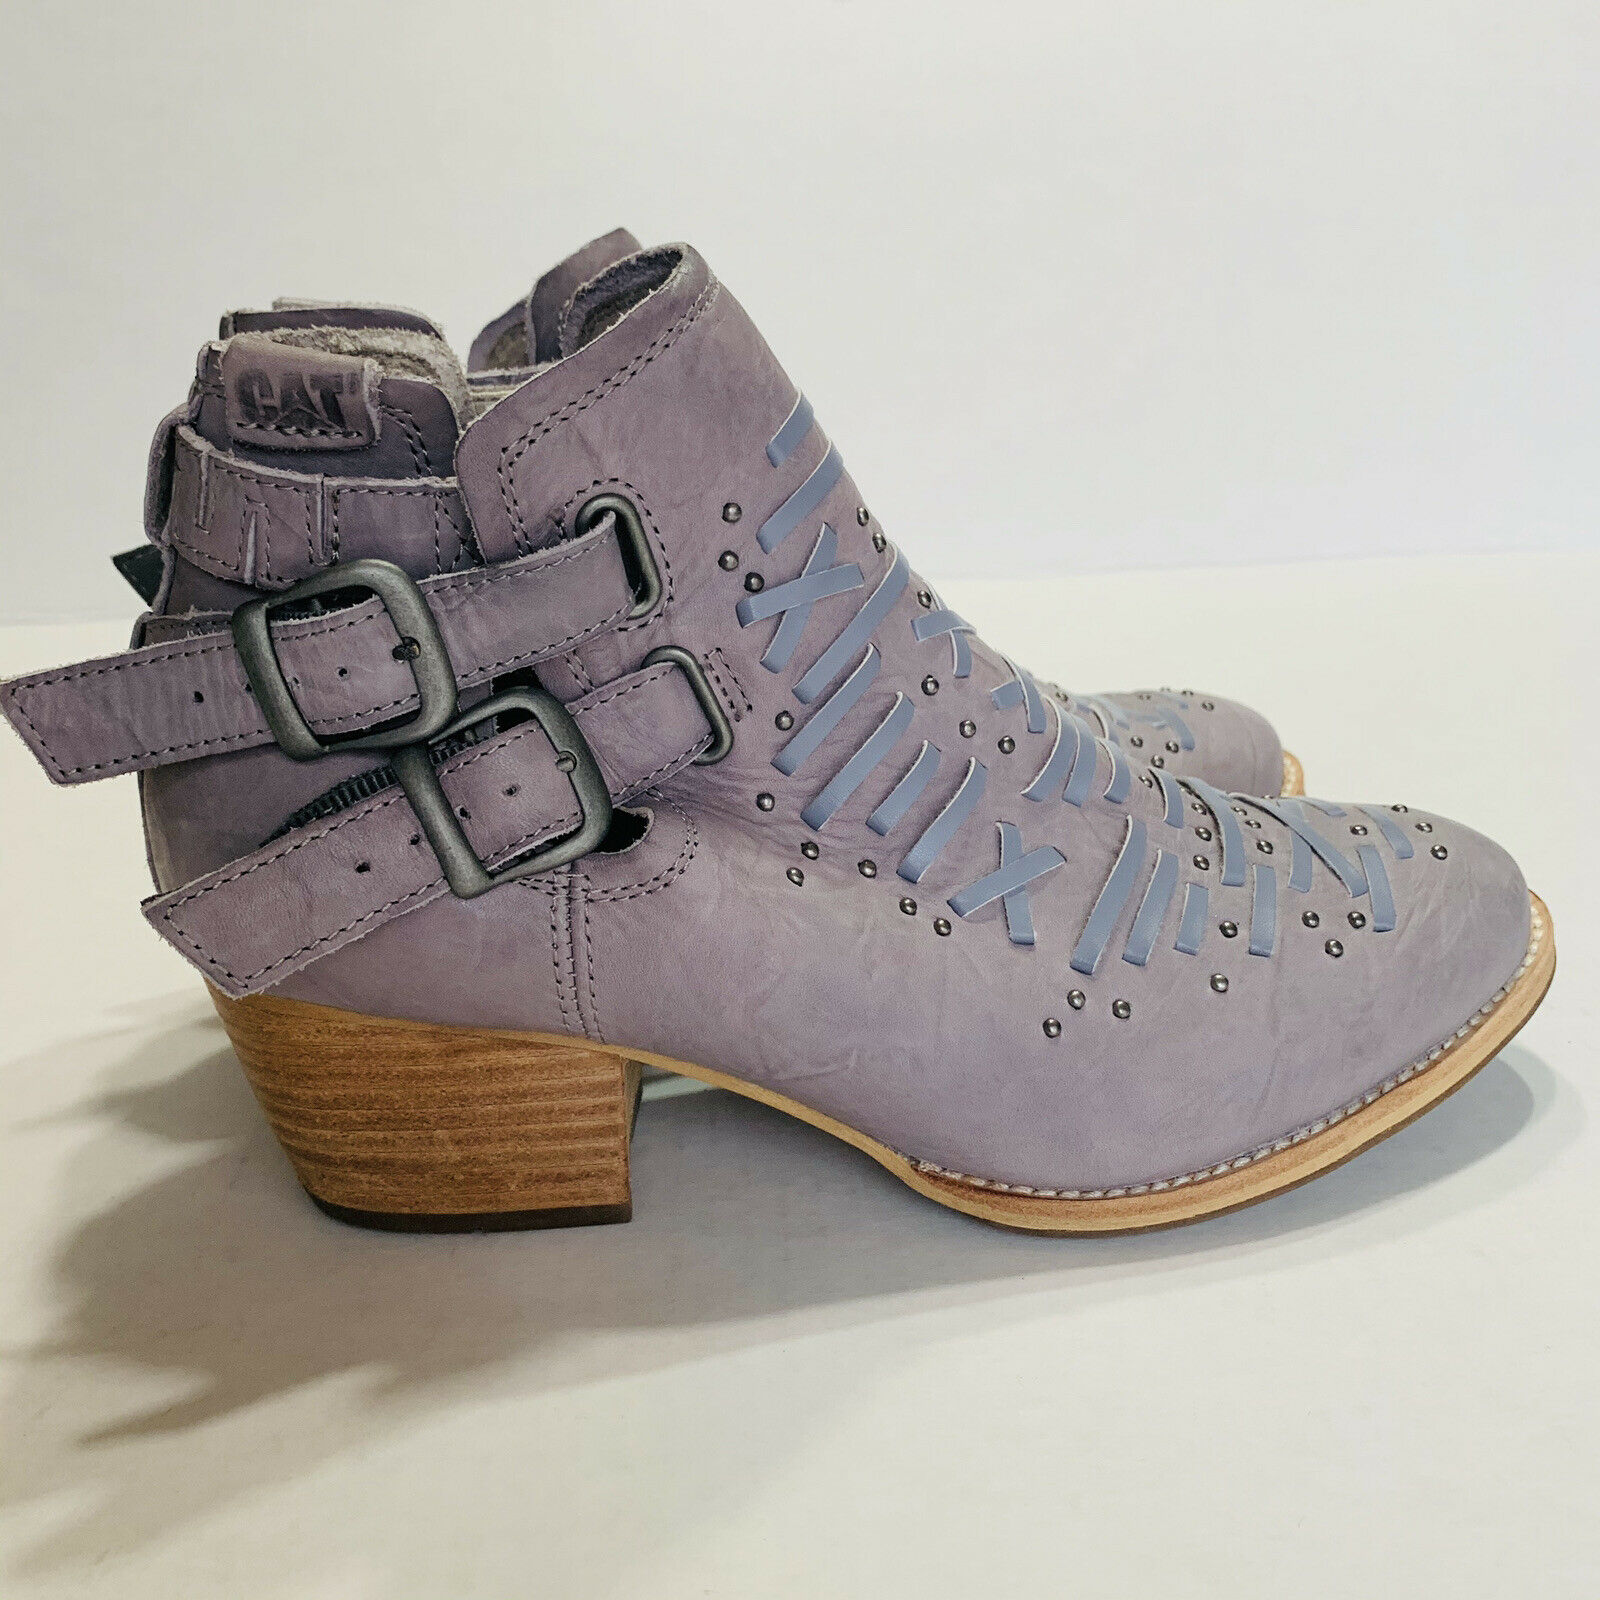 Caterpillar CAT Women's Shoes Cheyenne Boots West… - image 2